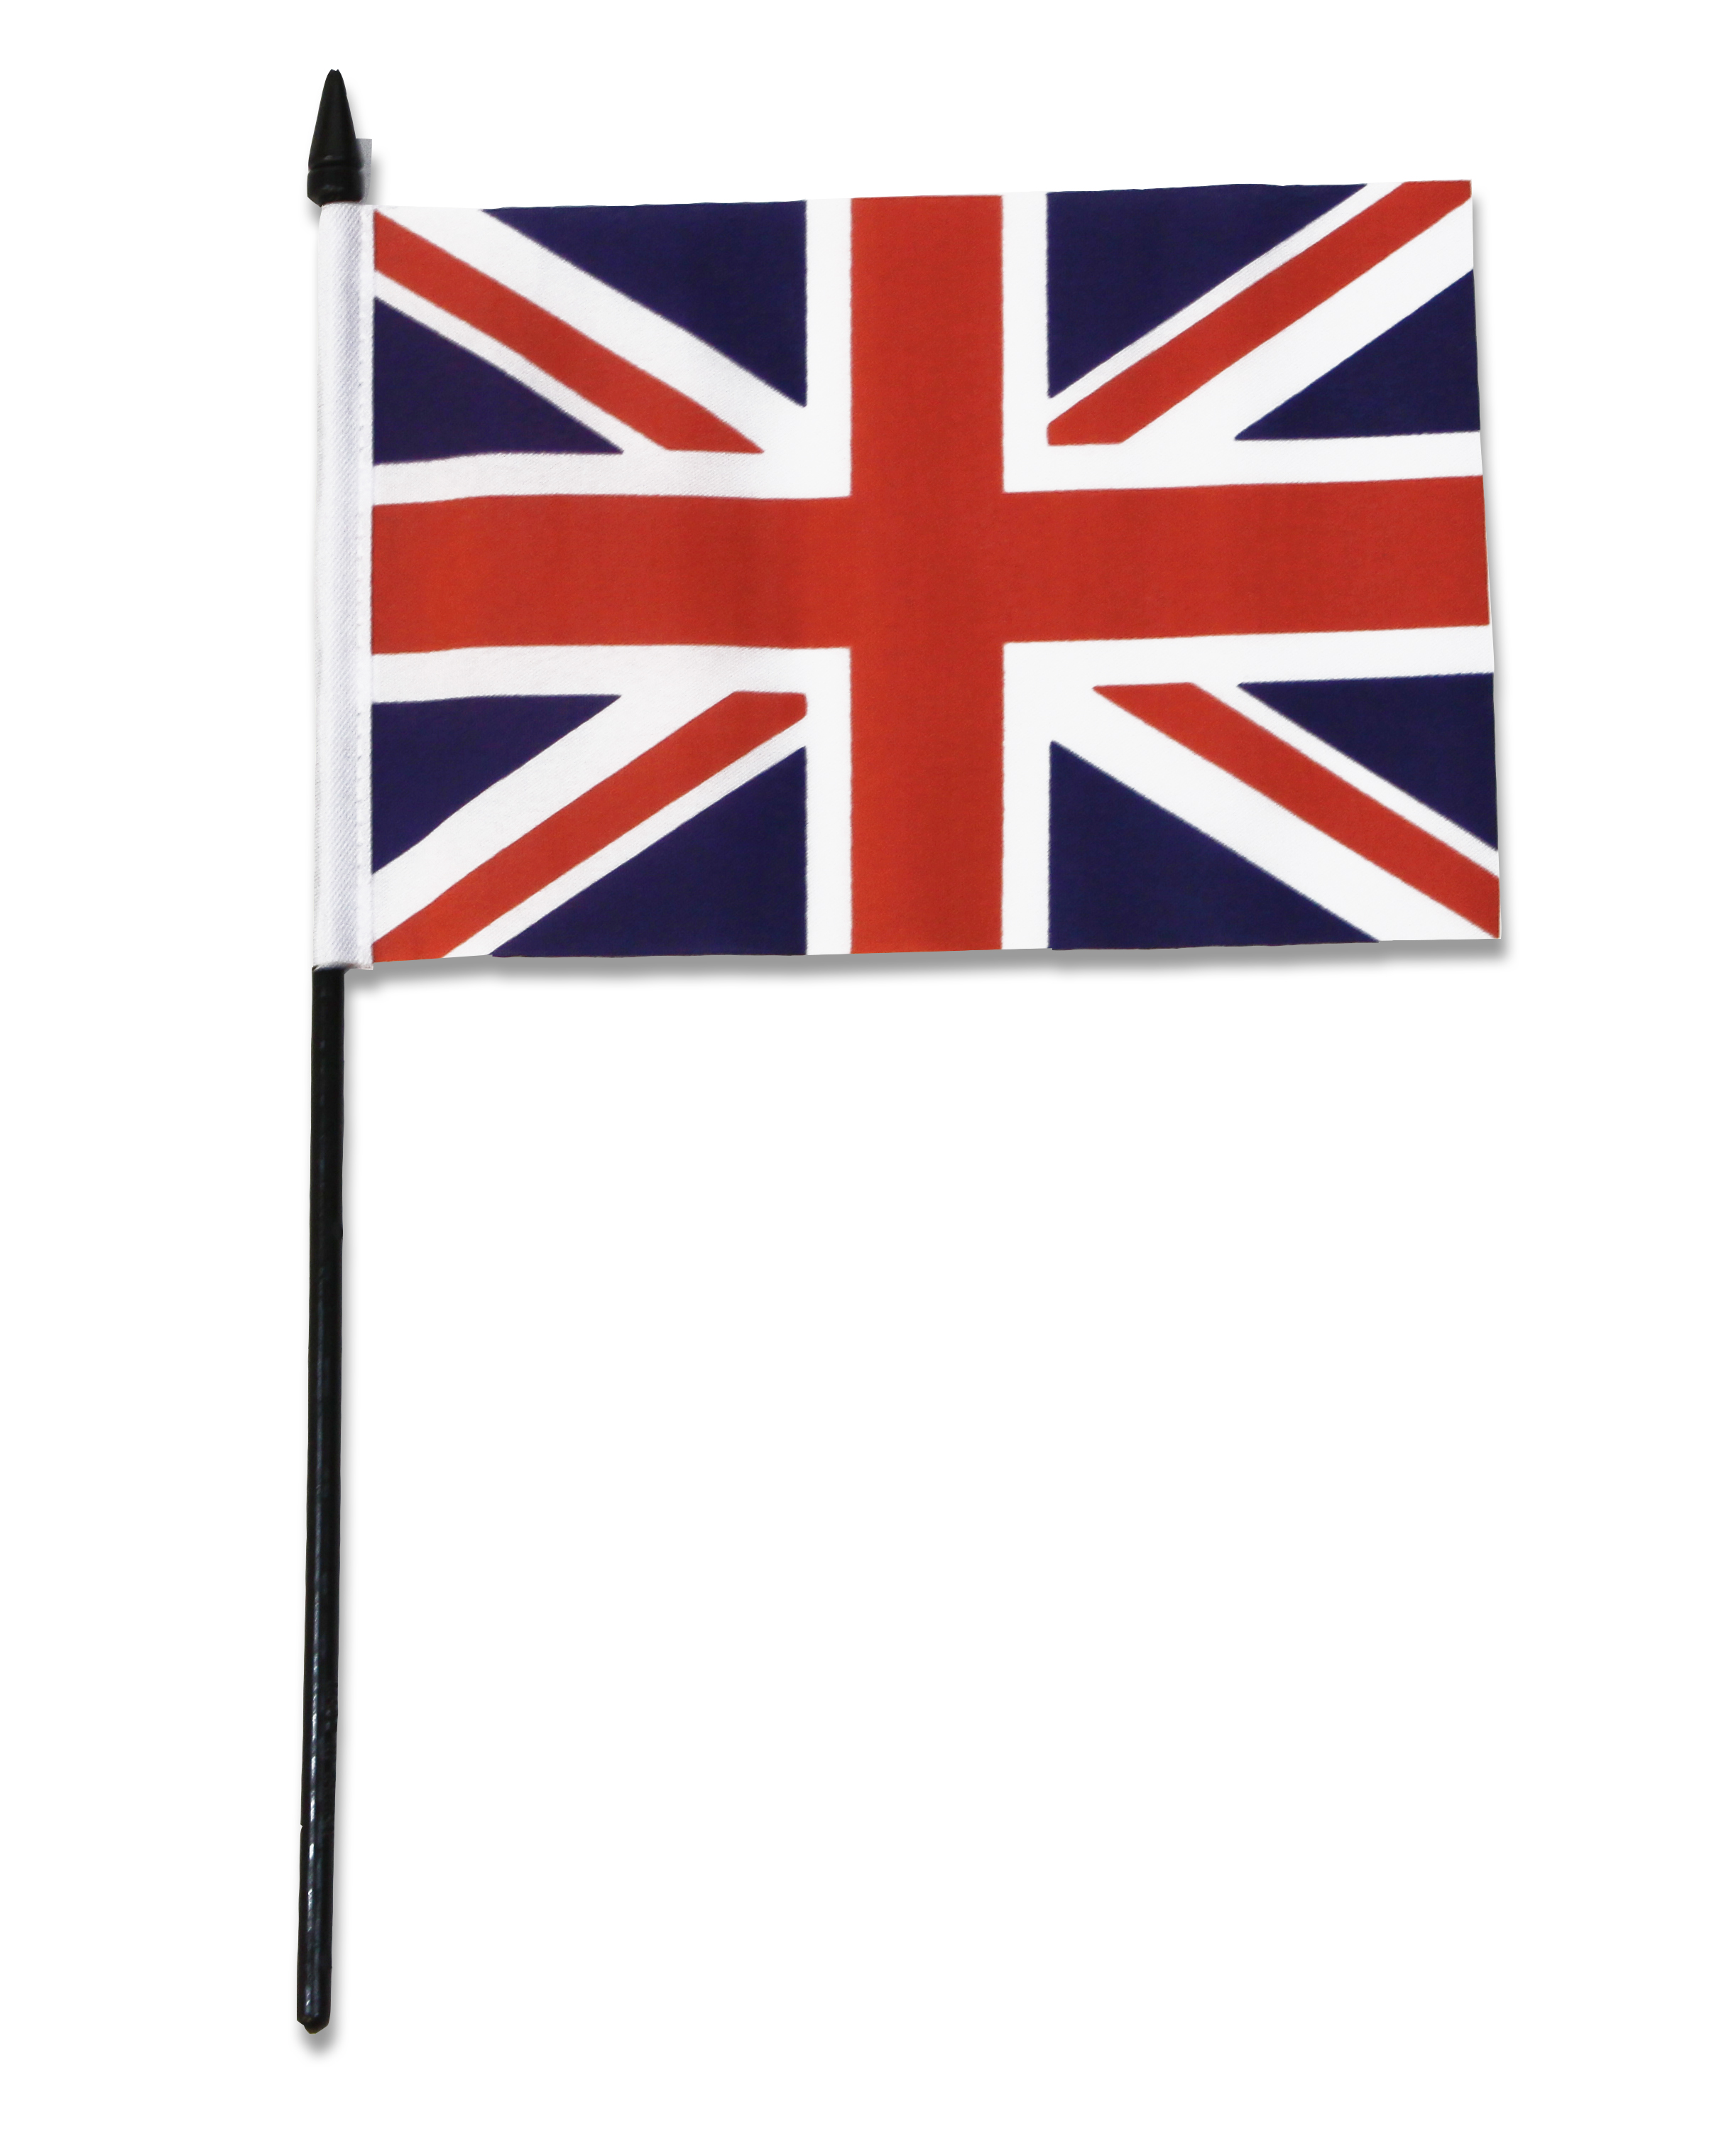 VE Day 8th May Flags & Bunting | Buy from The Flag and Bunting Store